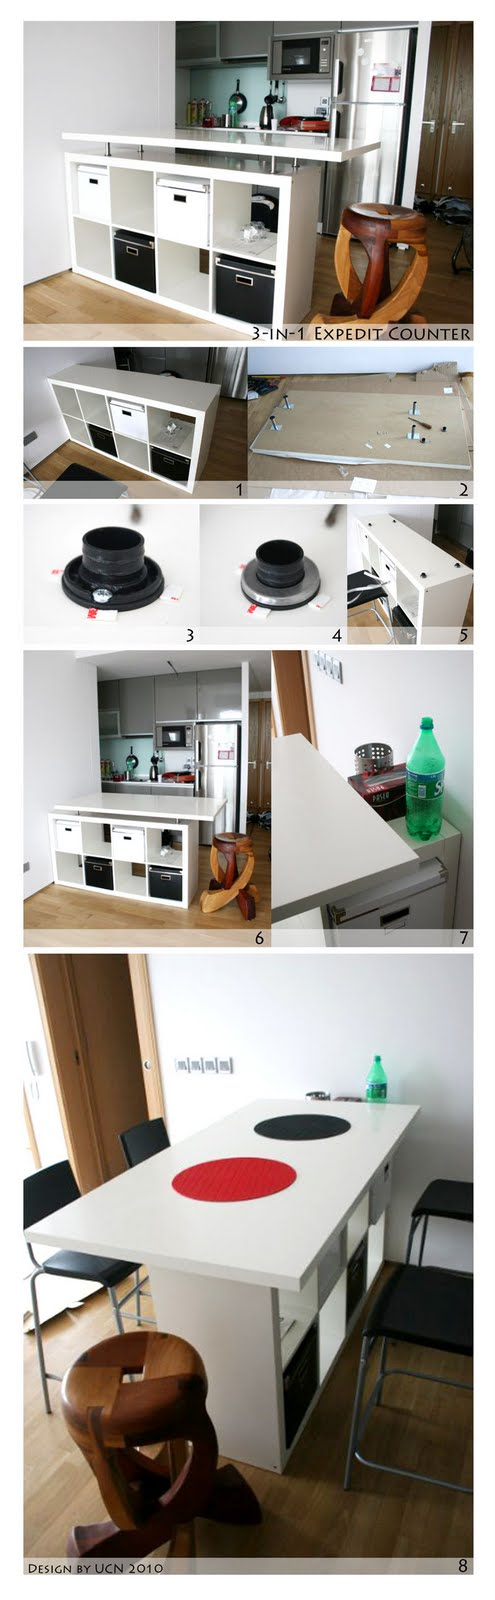 expedit kitchen counter to fulfill 3in1 functions  ikea